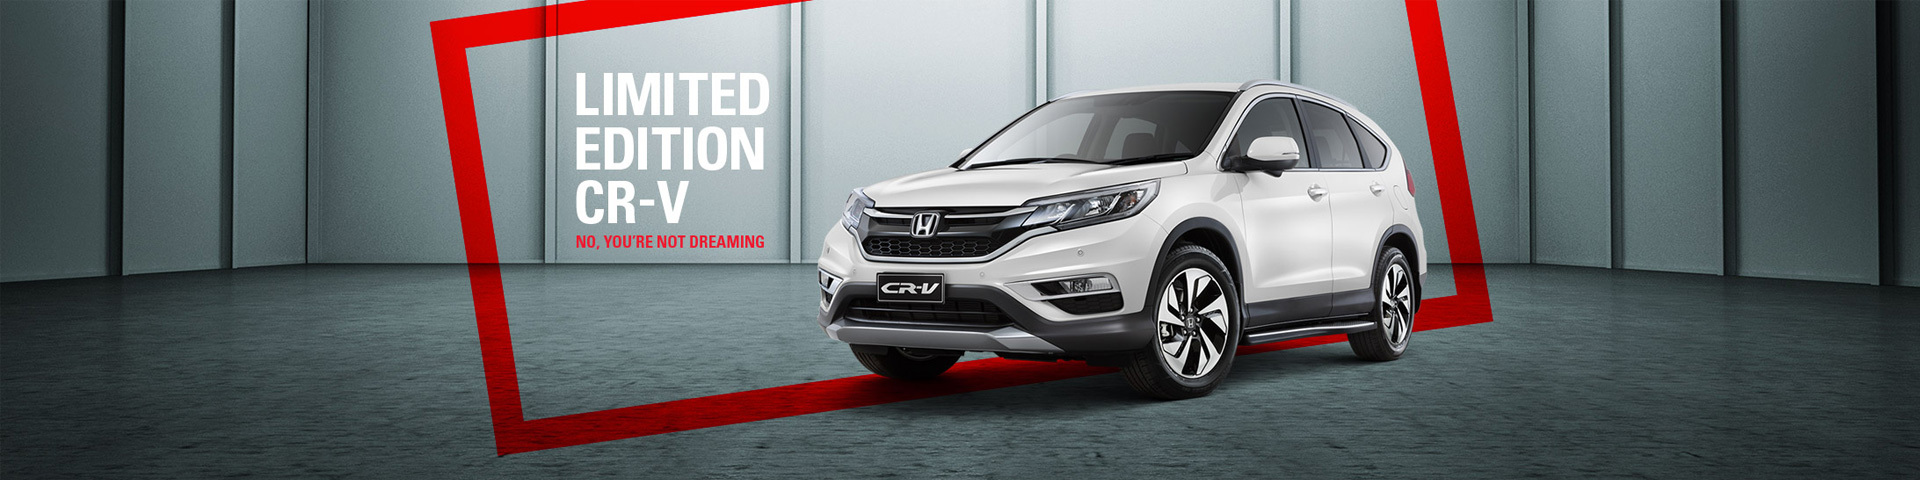 Naional Offer - Limited Edition CR-V